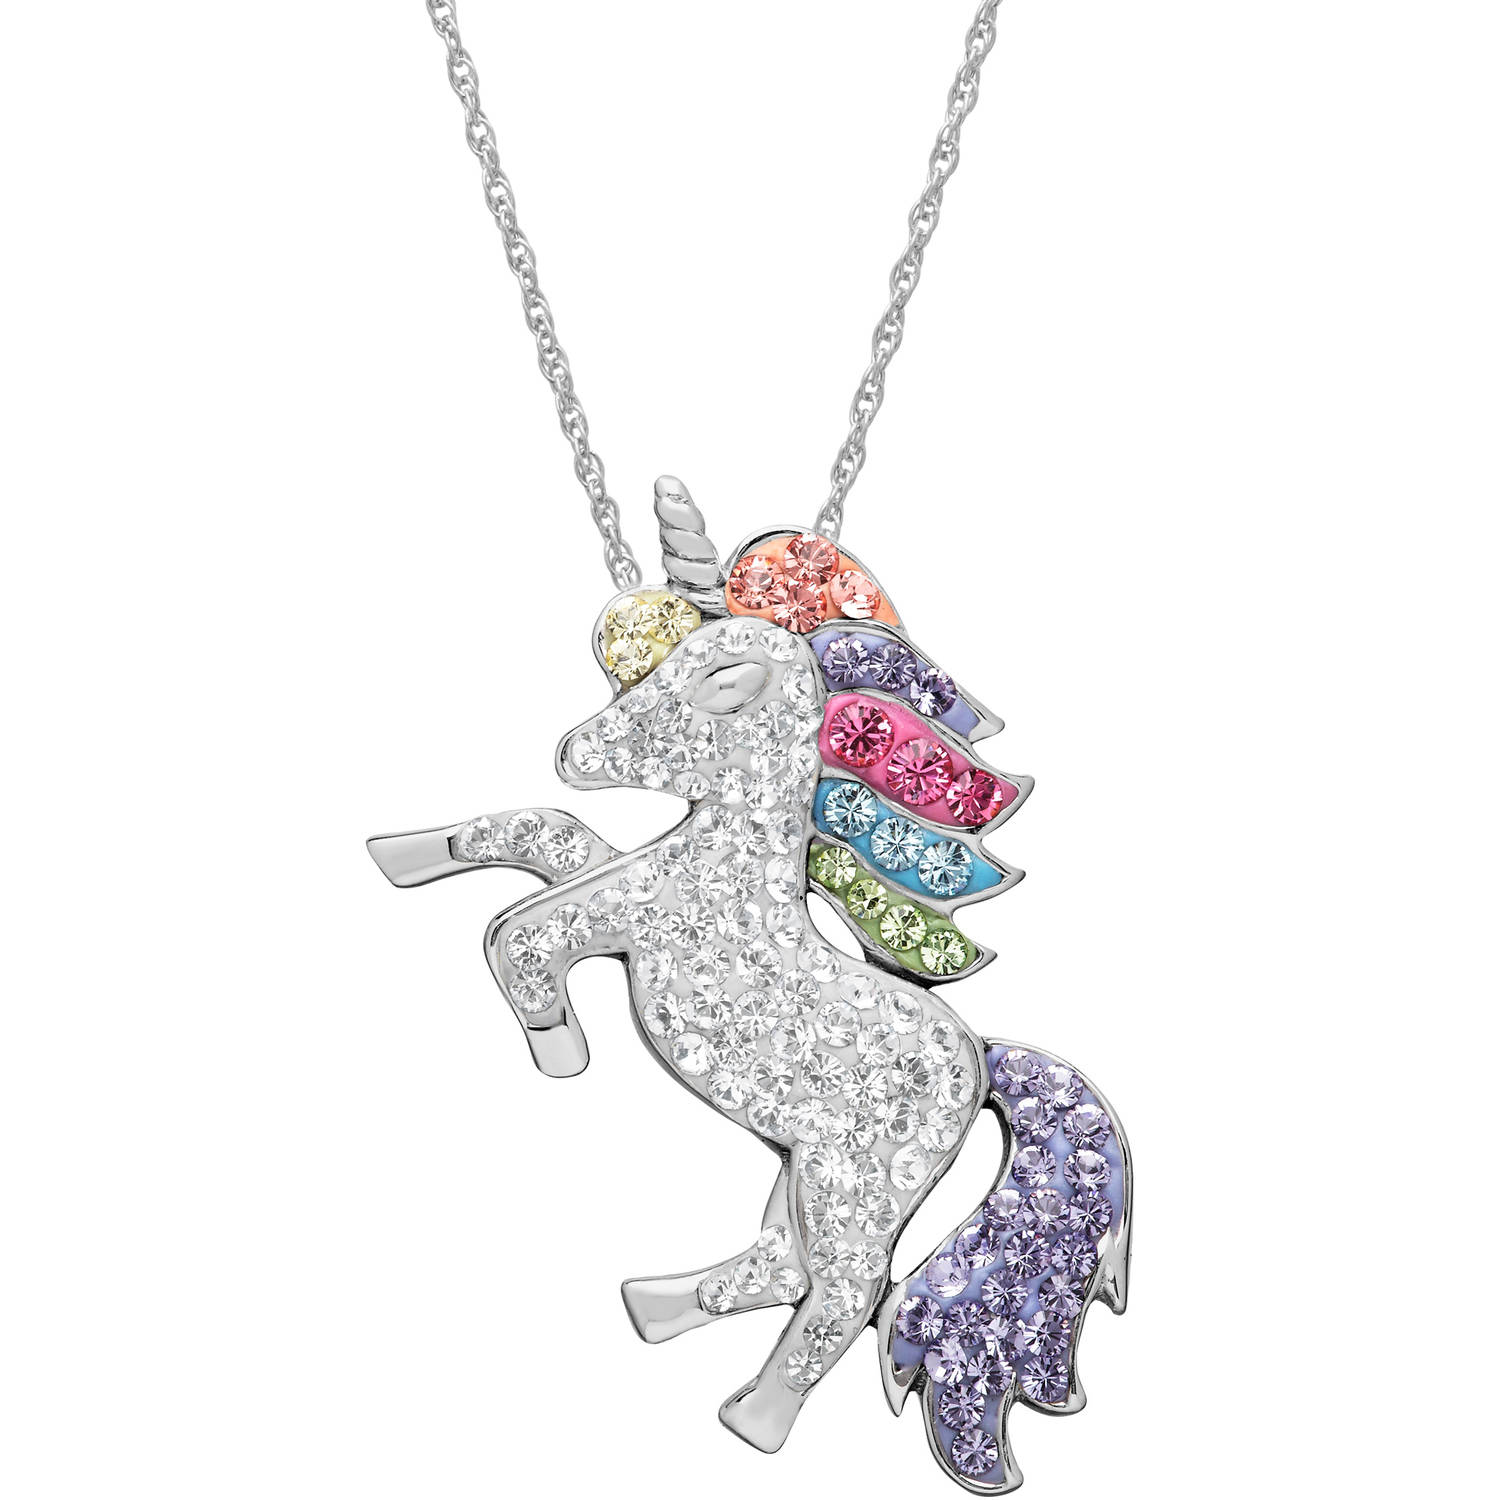 buyestella john pdp unicorn at lewis rose rsp pendant estella online necklace com bartlett johnlewis main gold